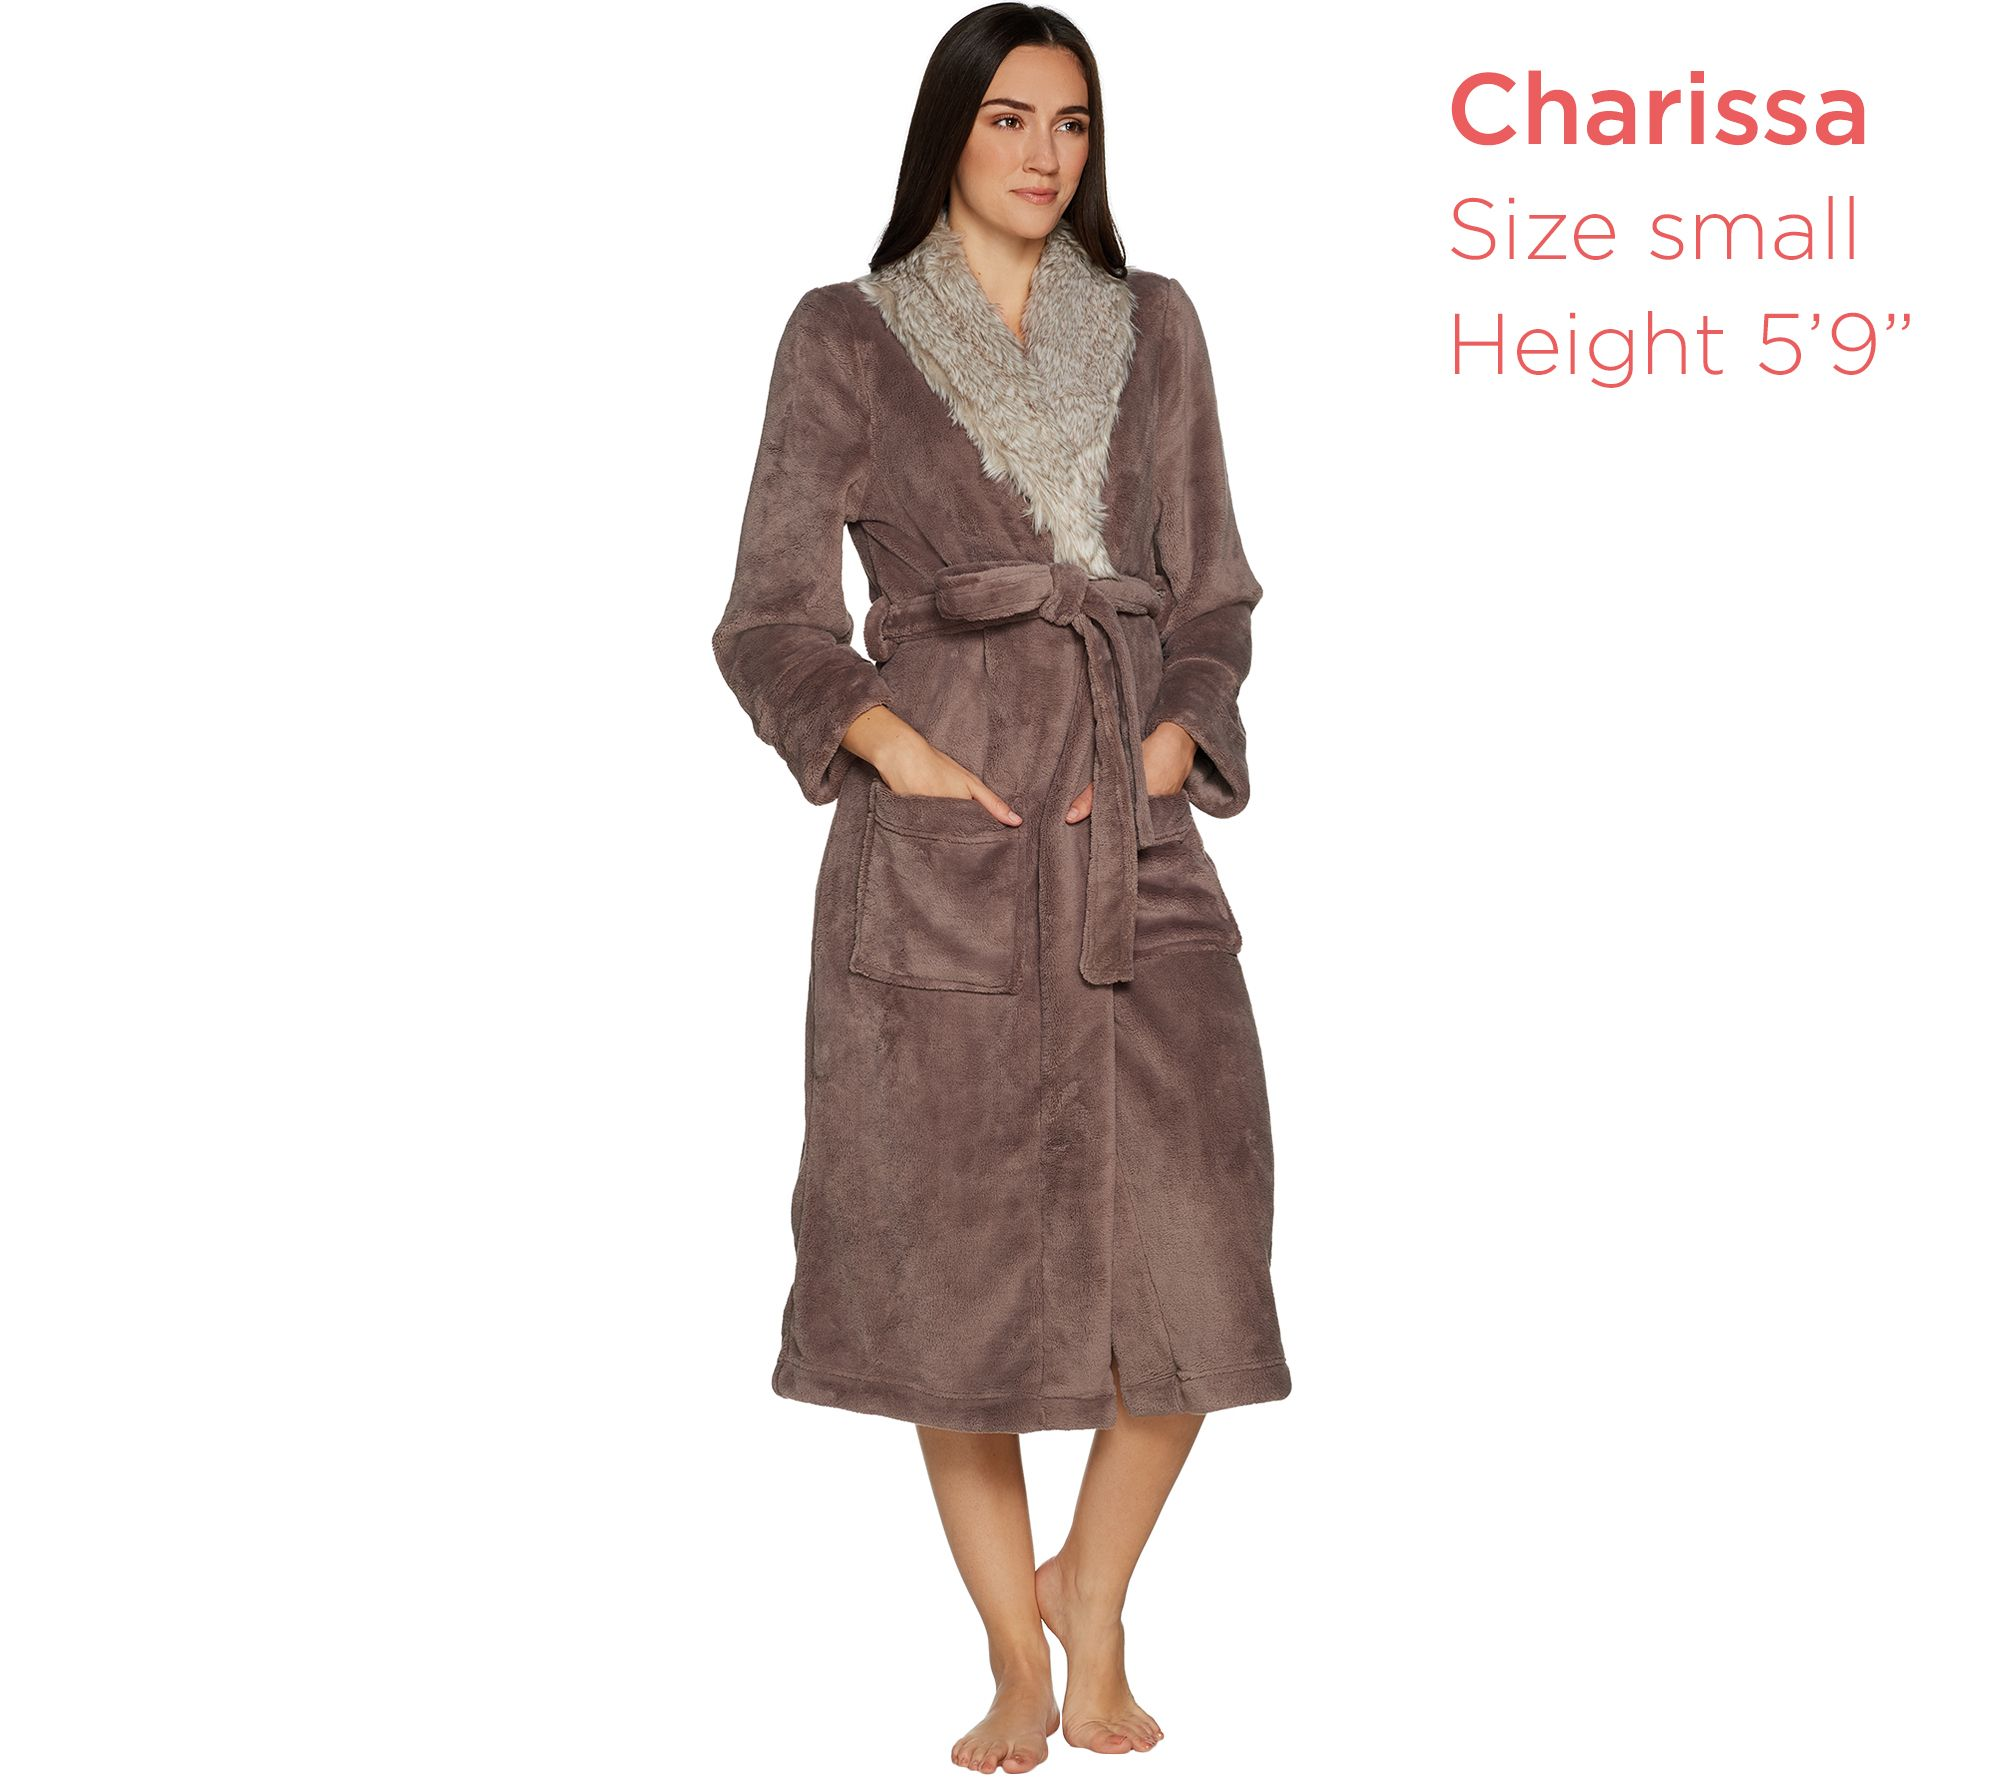 Primalush Full Length Robe with Faux Fur Collar by Berkshire - Page 1 —  QVC.com 31fe96b1c